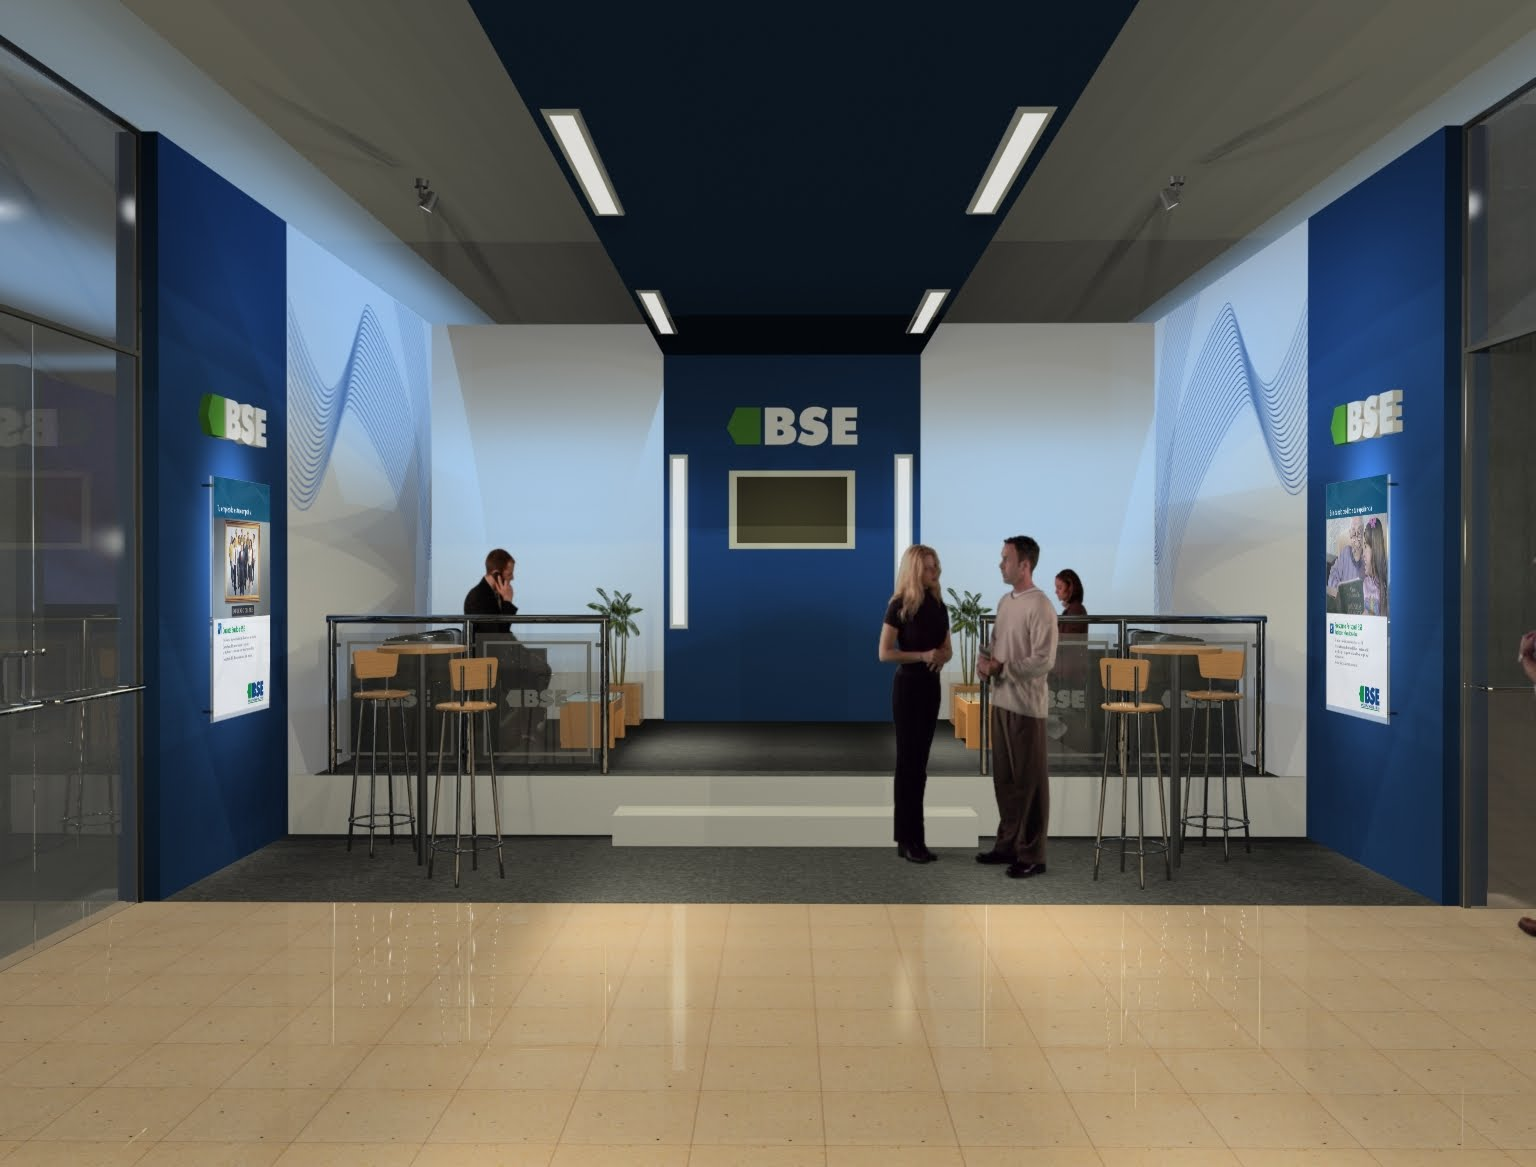 Iu arquitectura y dise o stand bse banco santiago del for Arquitectura y diseno stands 8 pdf